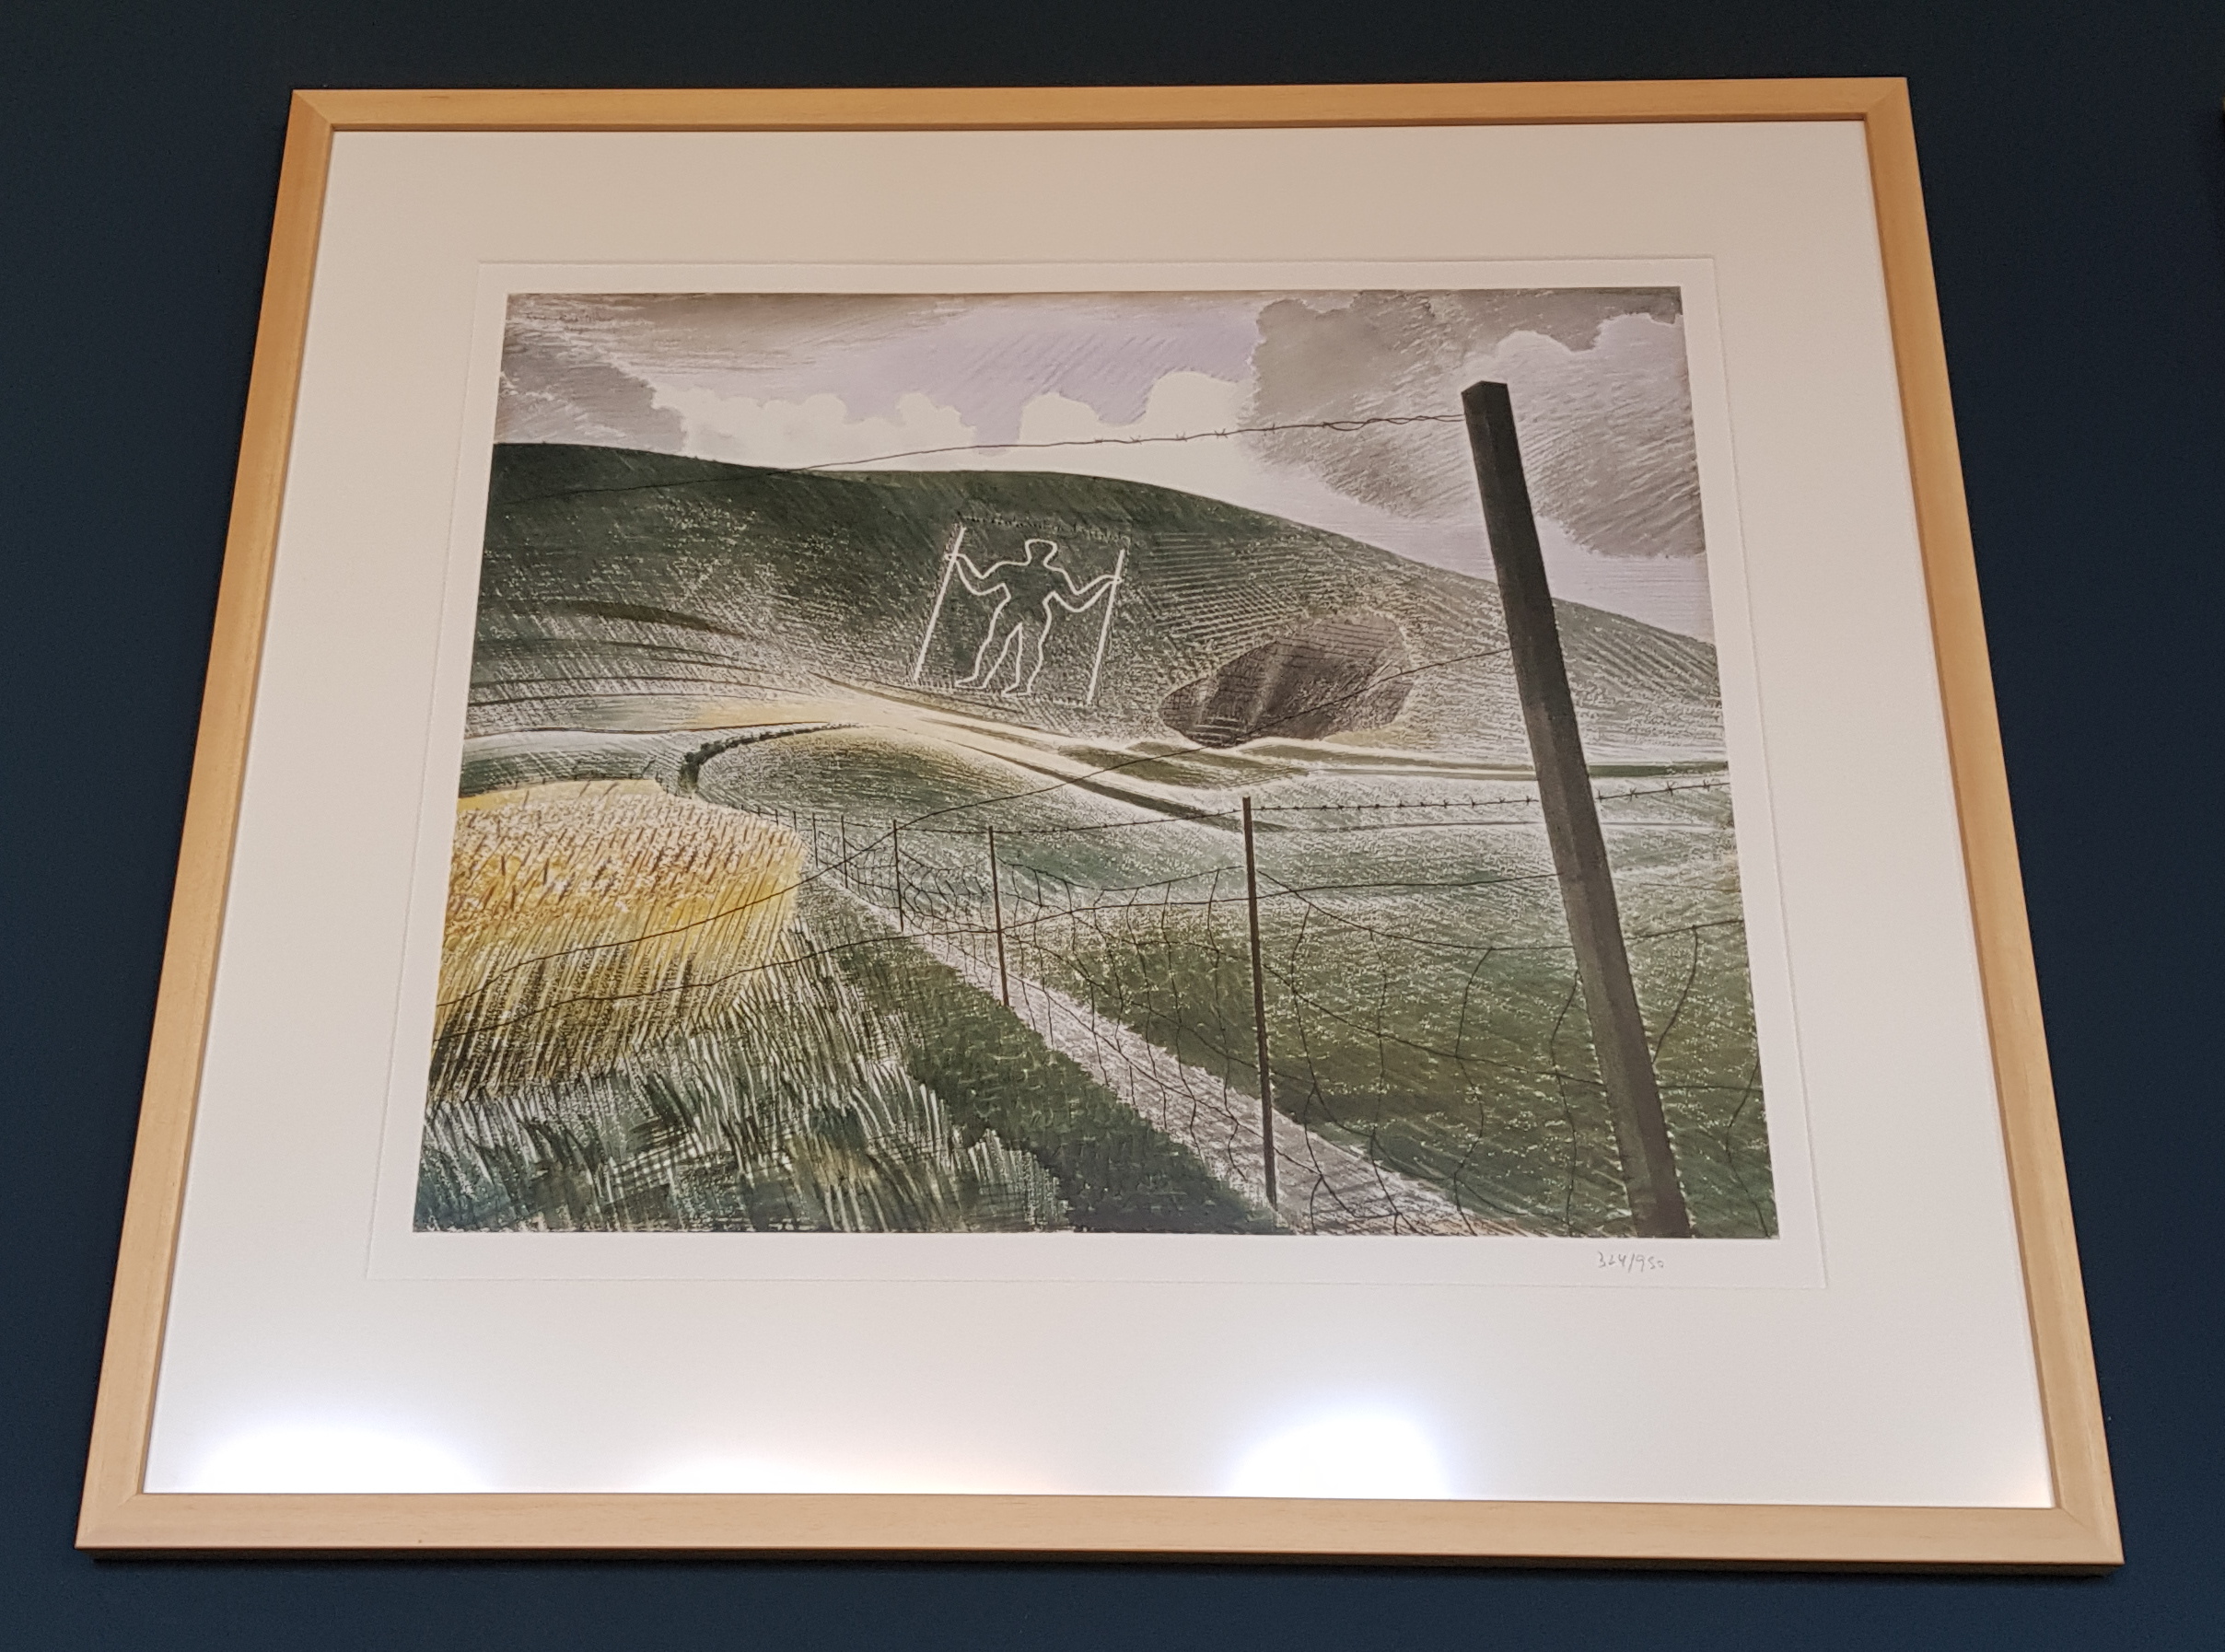 Ravilious Long Man of Wilmington